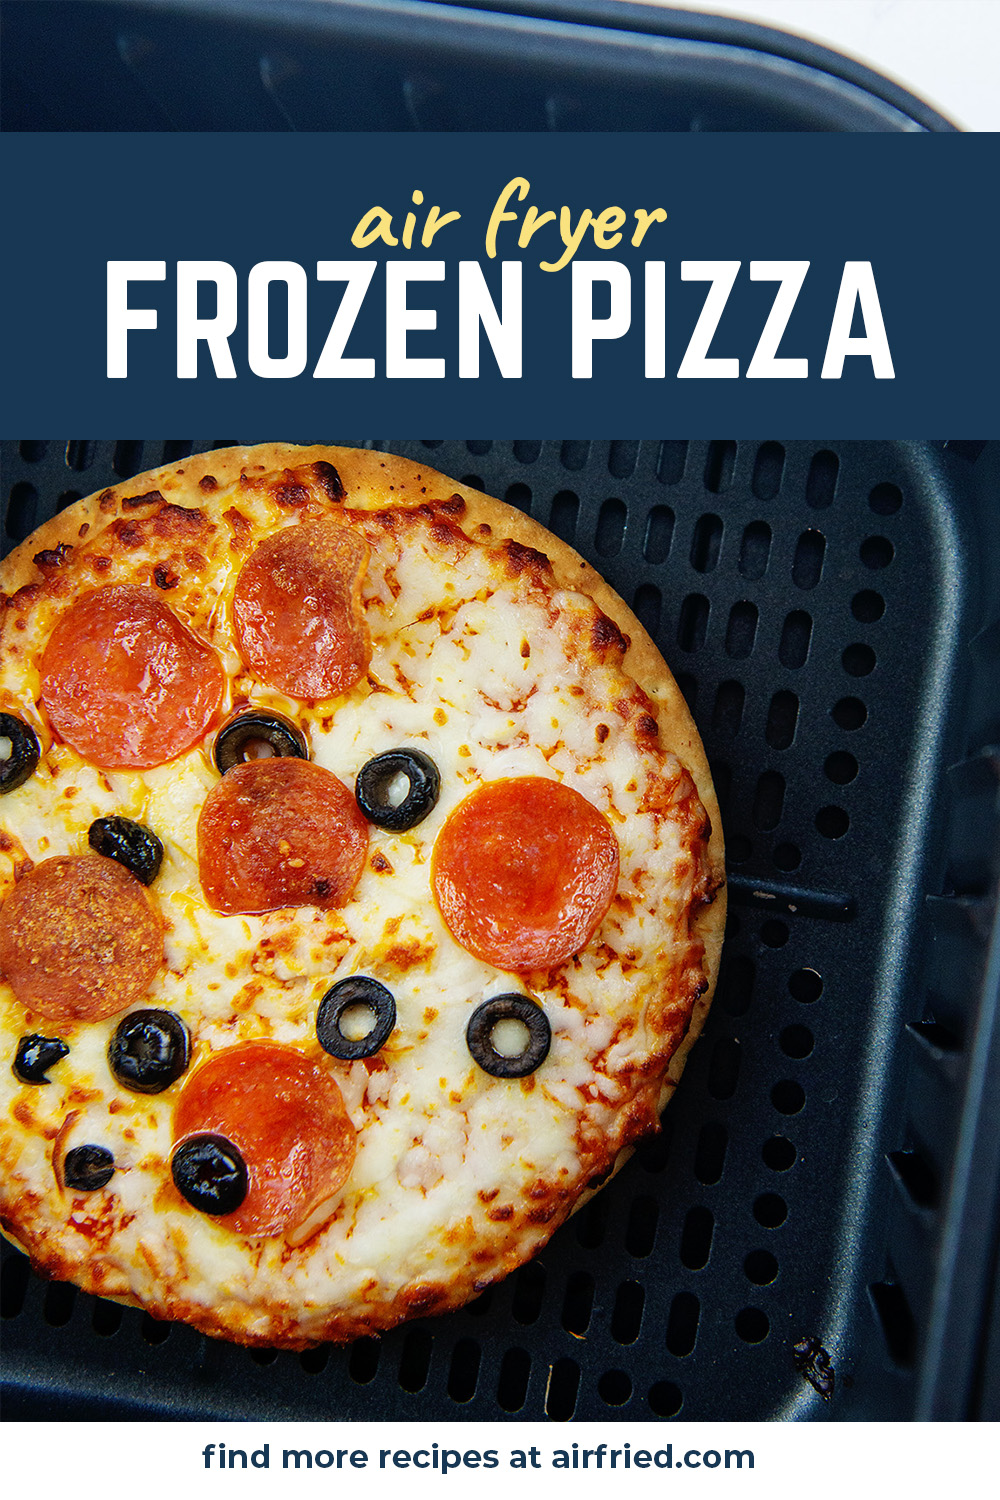 The air fryer is a perfect way to cook a personal pizza!